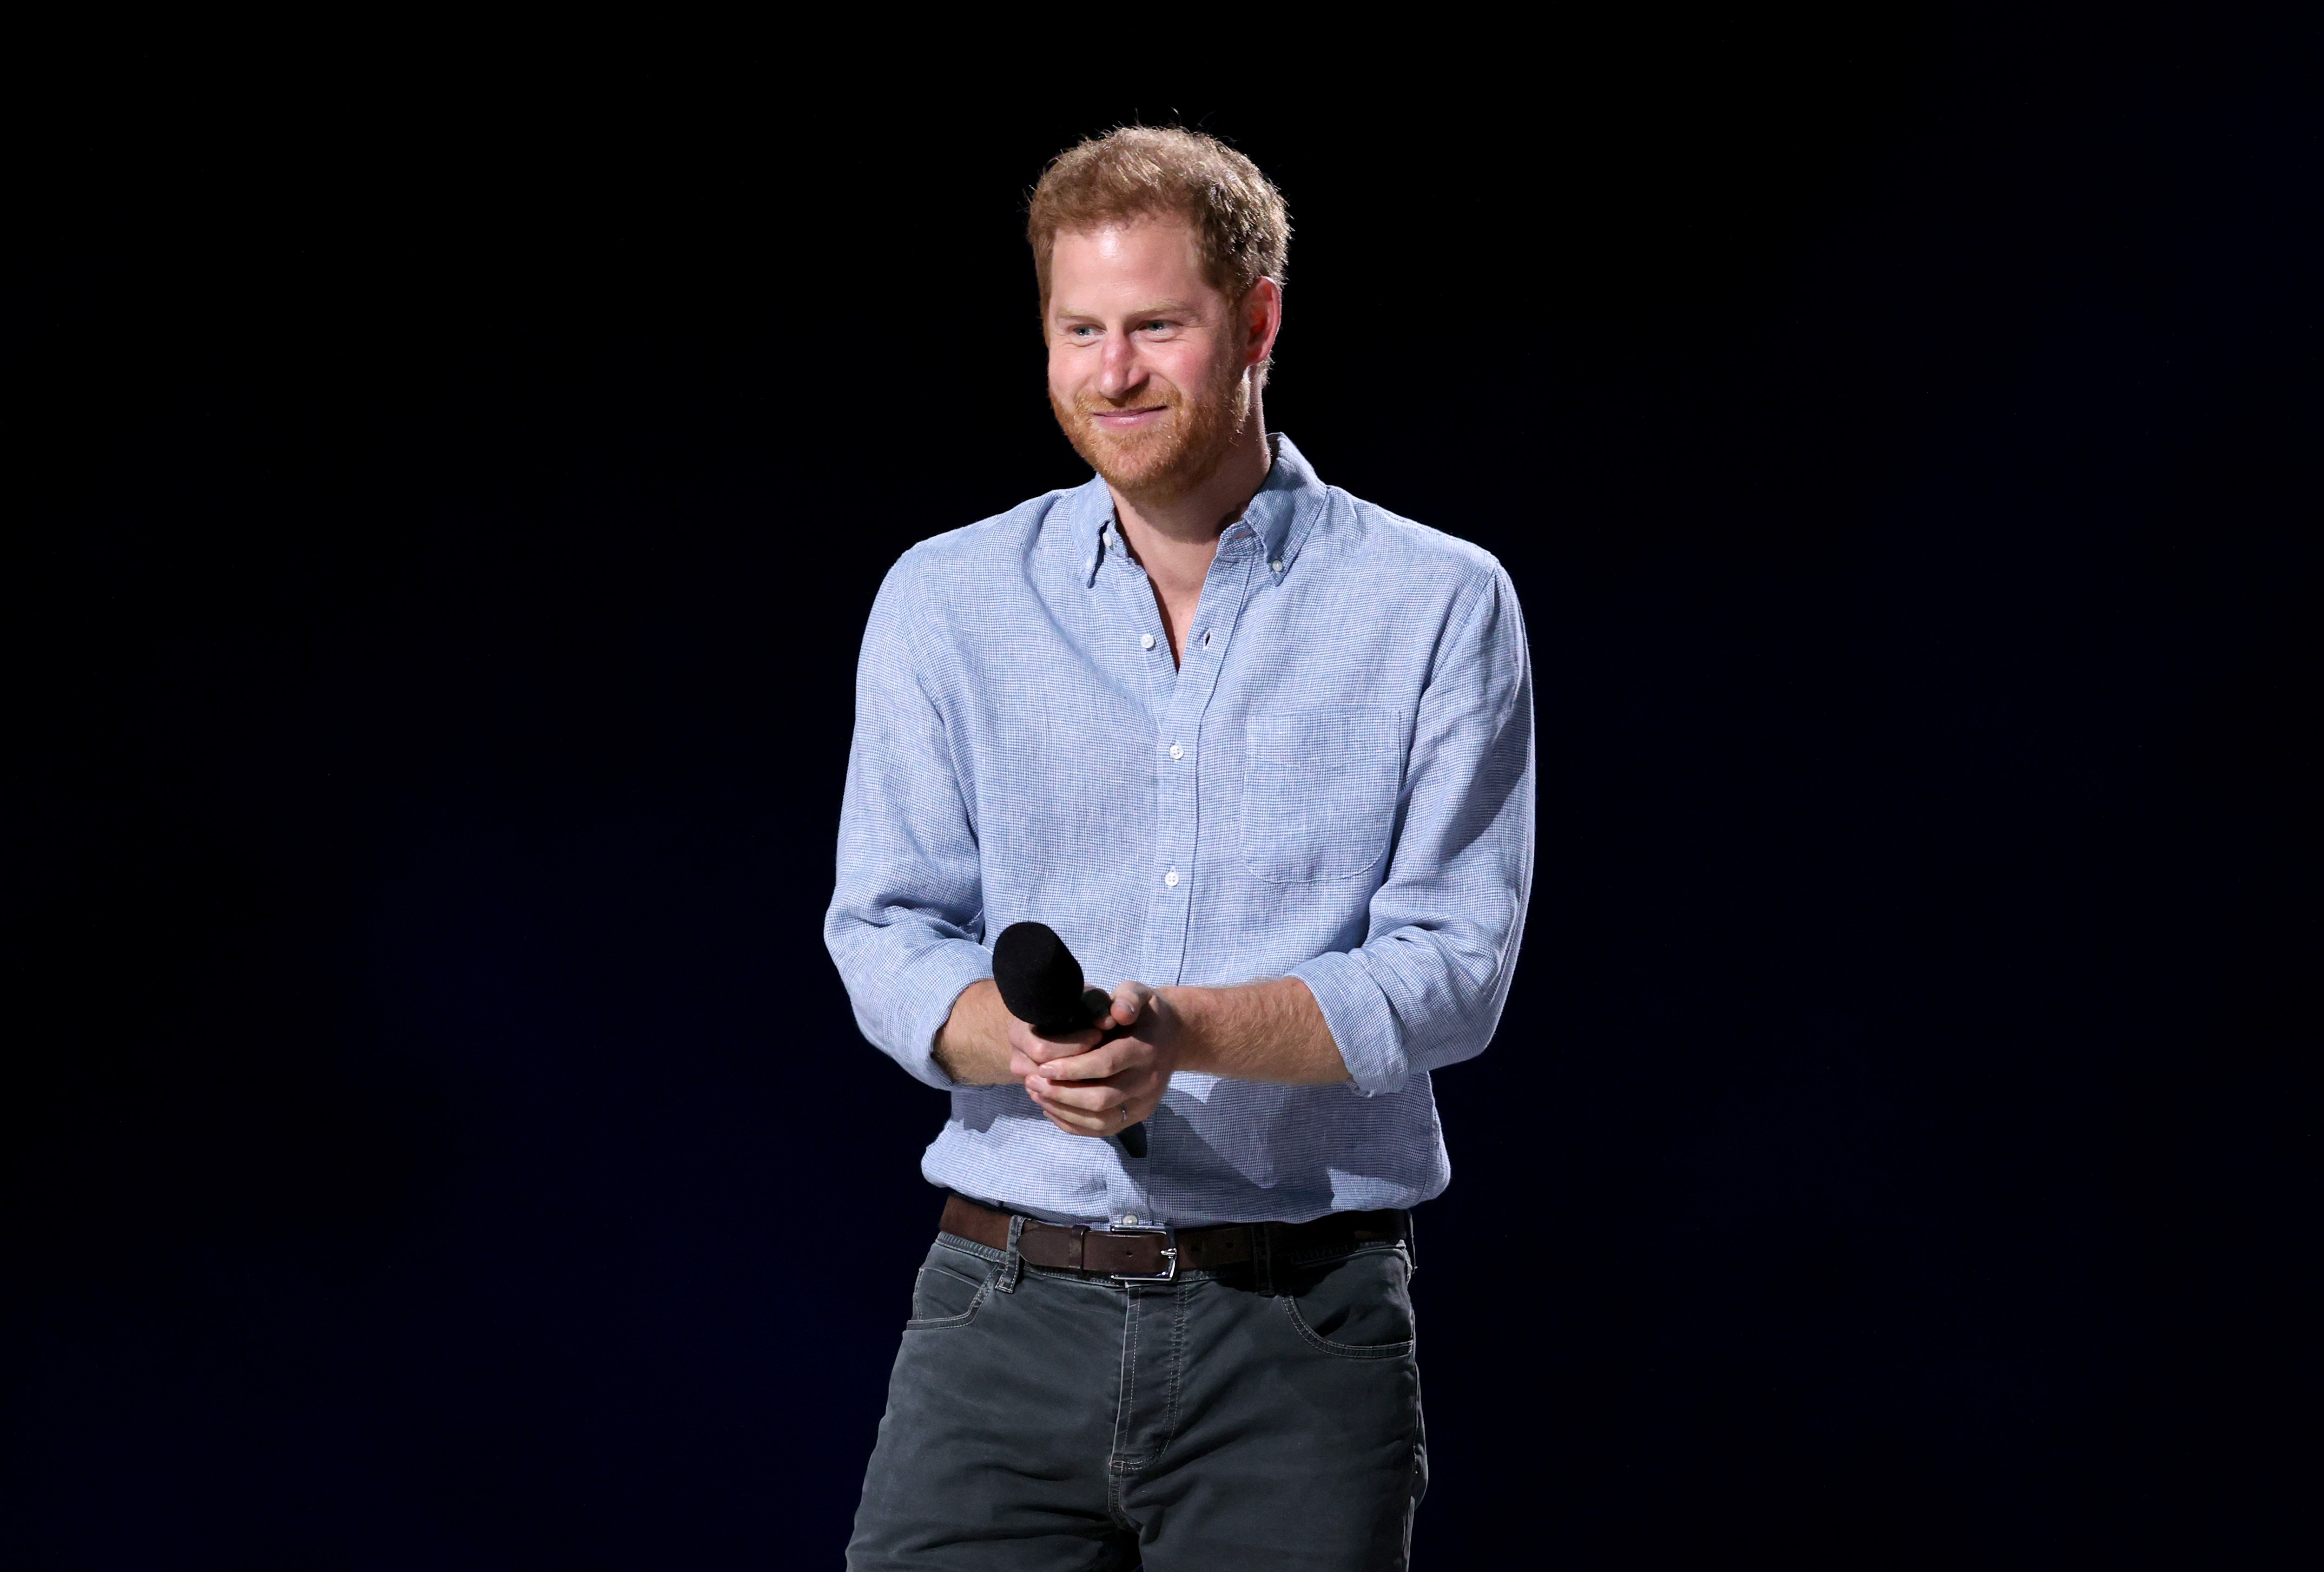 Prince Harry at the Global Citizen VAX LIVE: The Concert To Reunite The World will be broadcast on May 8, 2021.  Photo: Getty Images